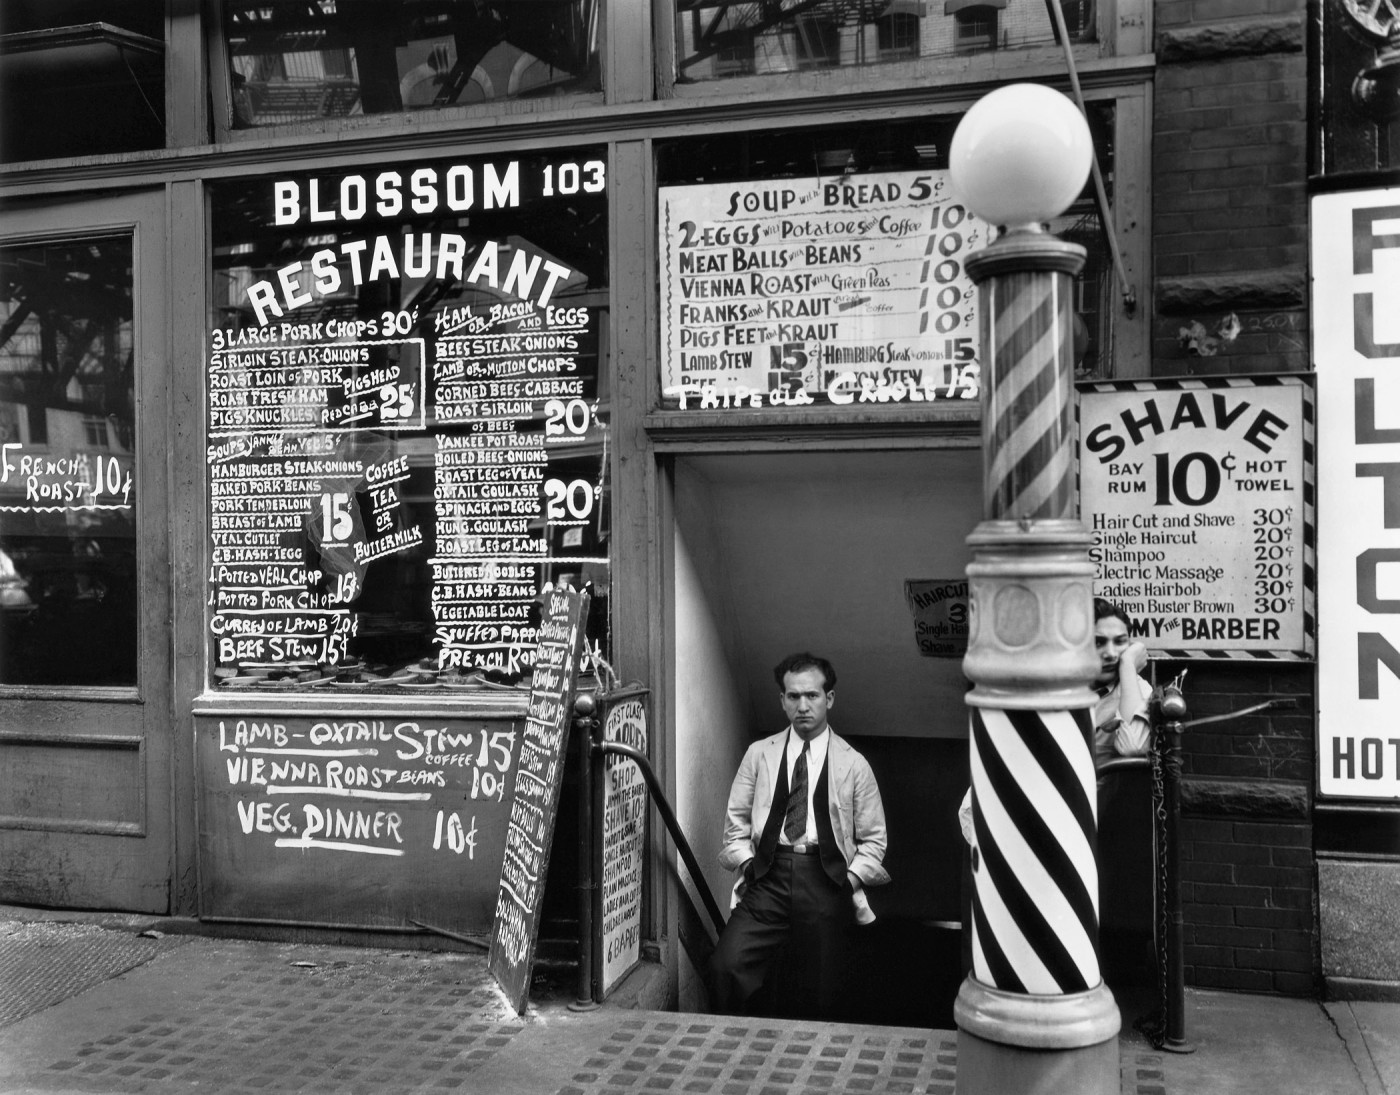 Berenice Abbott , </span><span><em>Blossom Restaurant, 103 Bowery, New York City, October 24,</em>, </span><span>1935